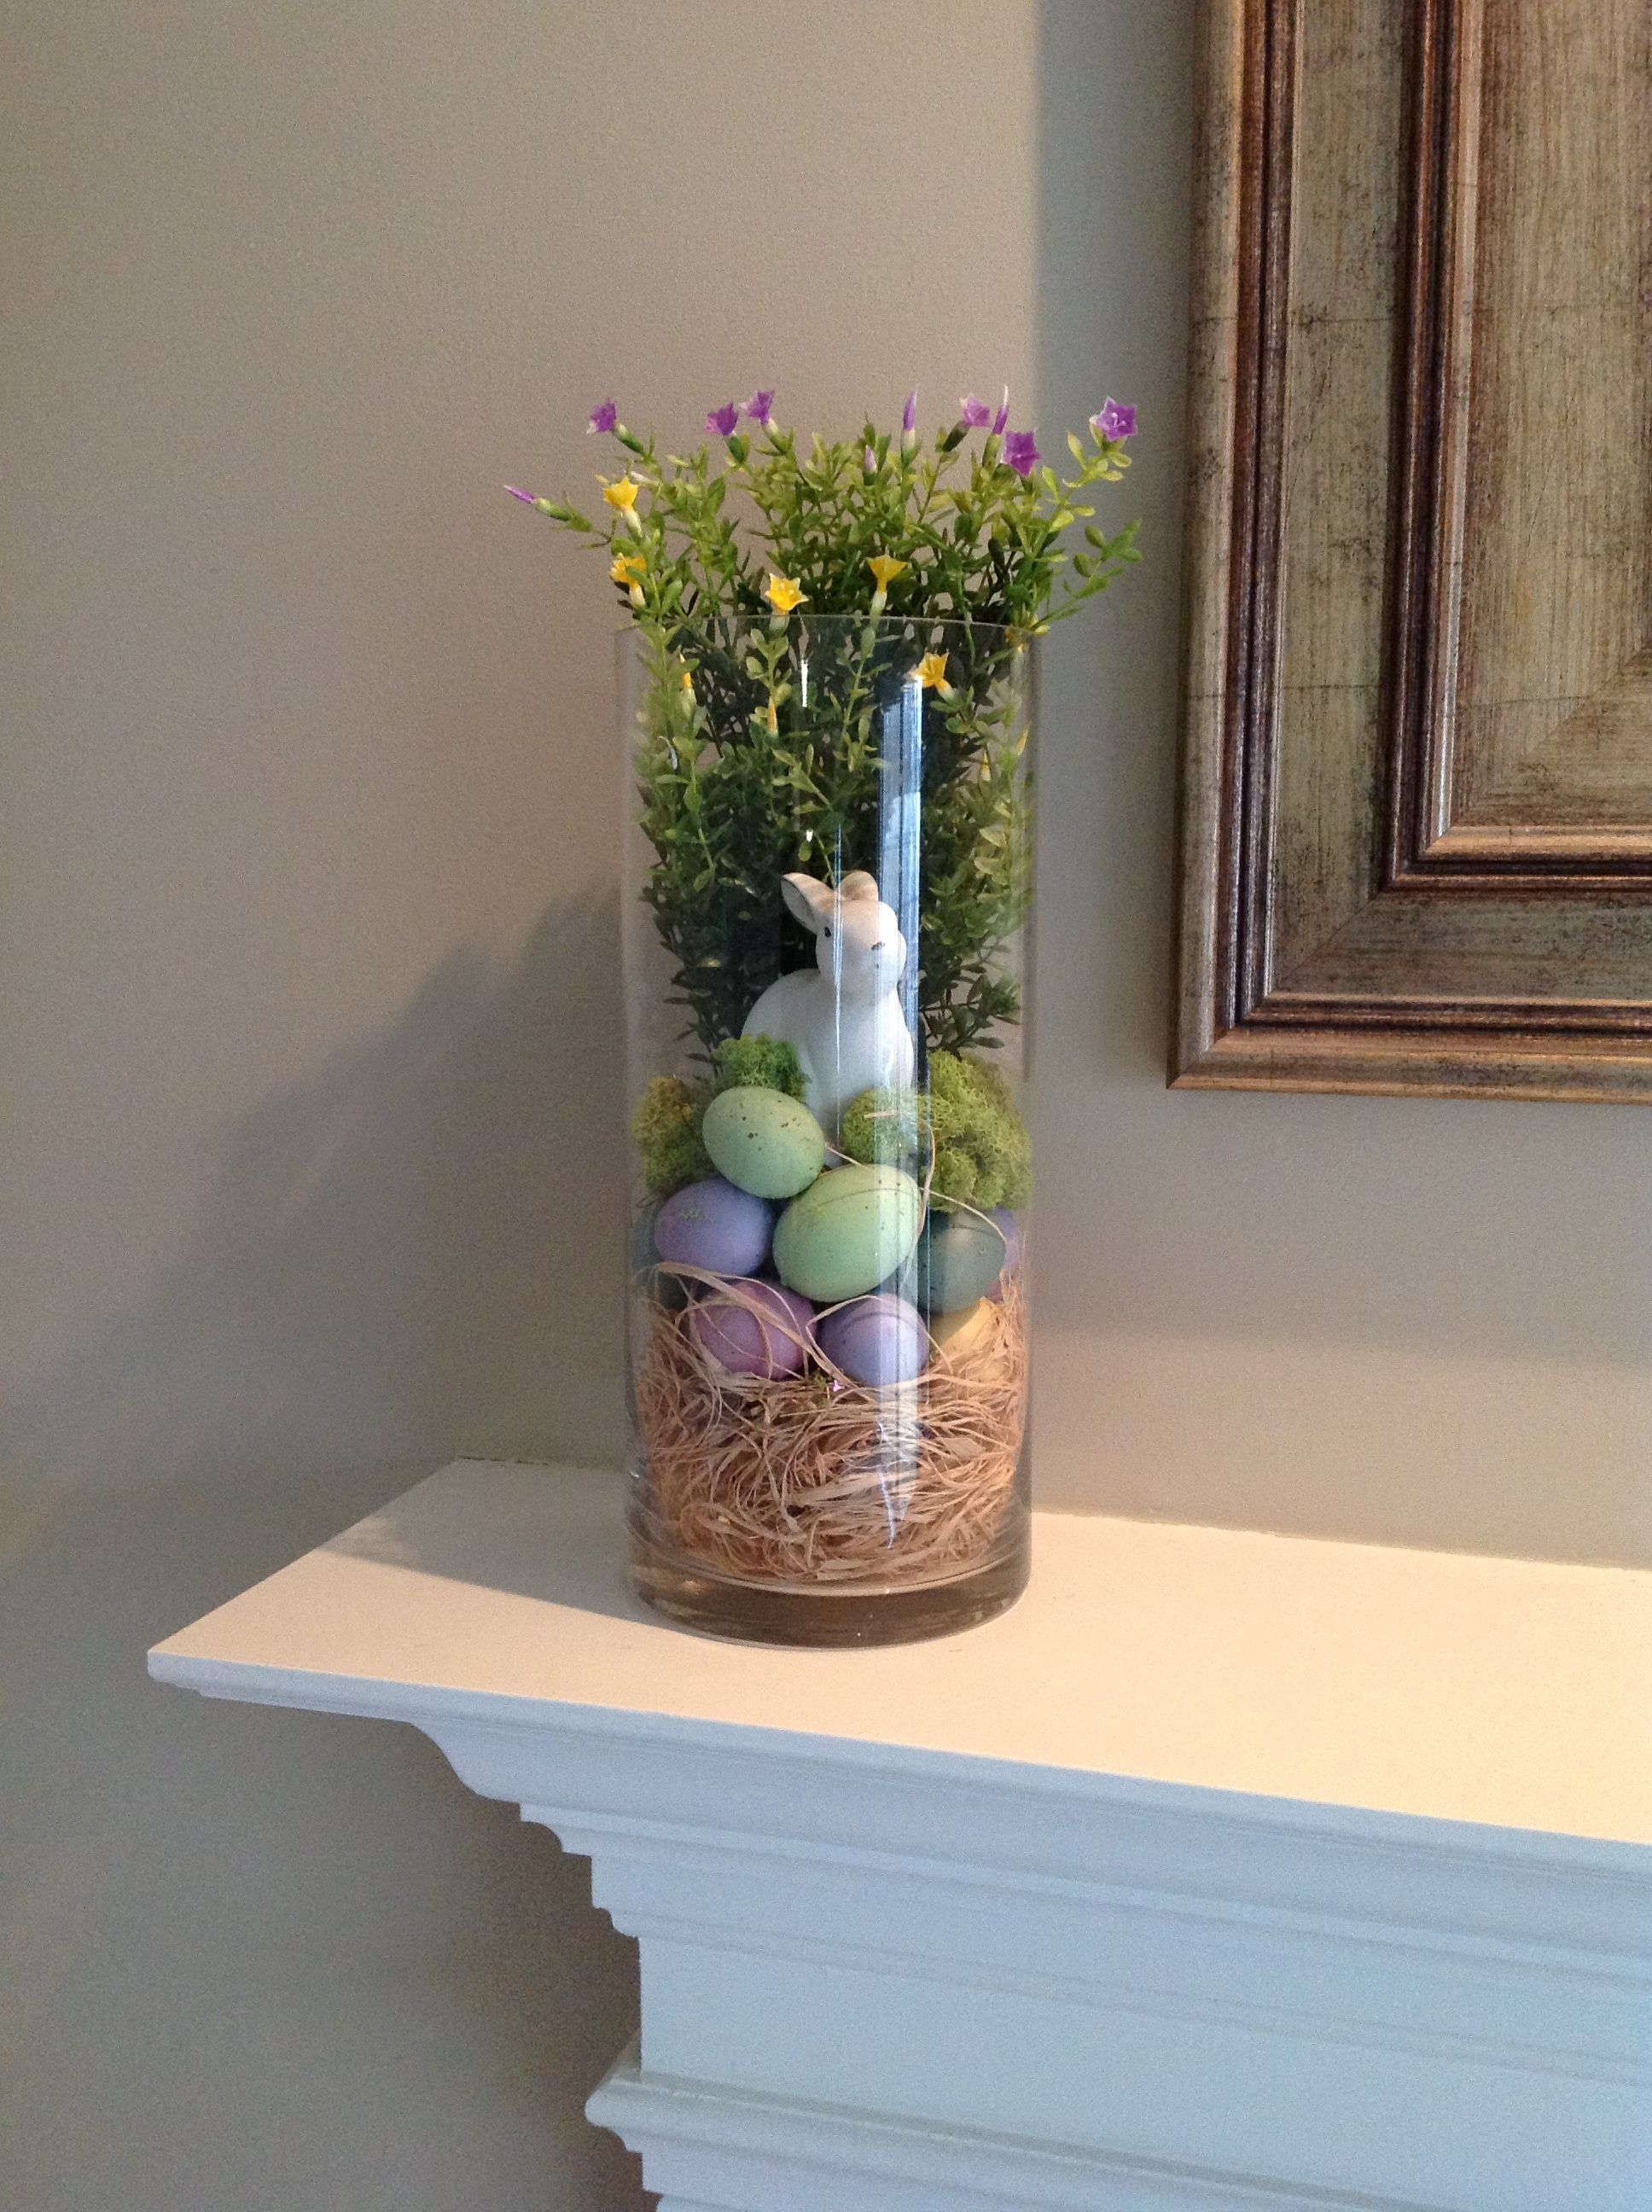 Flower Vase Ideas For Decorating Hurricane Glass Vase Filler For Spring And Easter On The